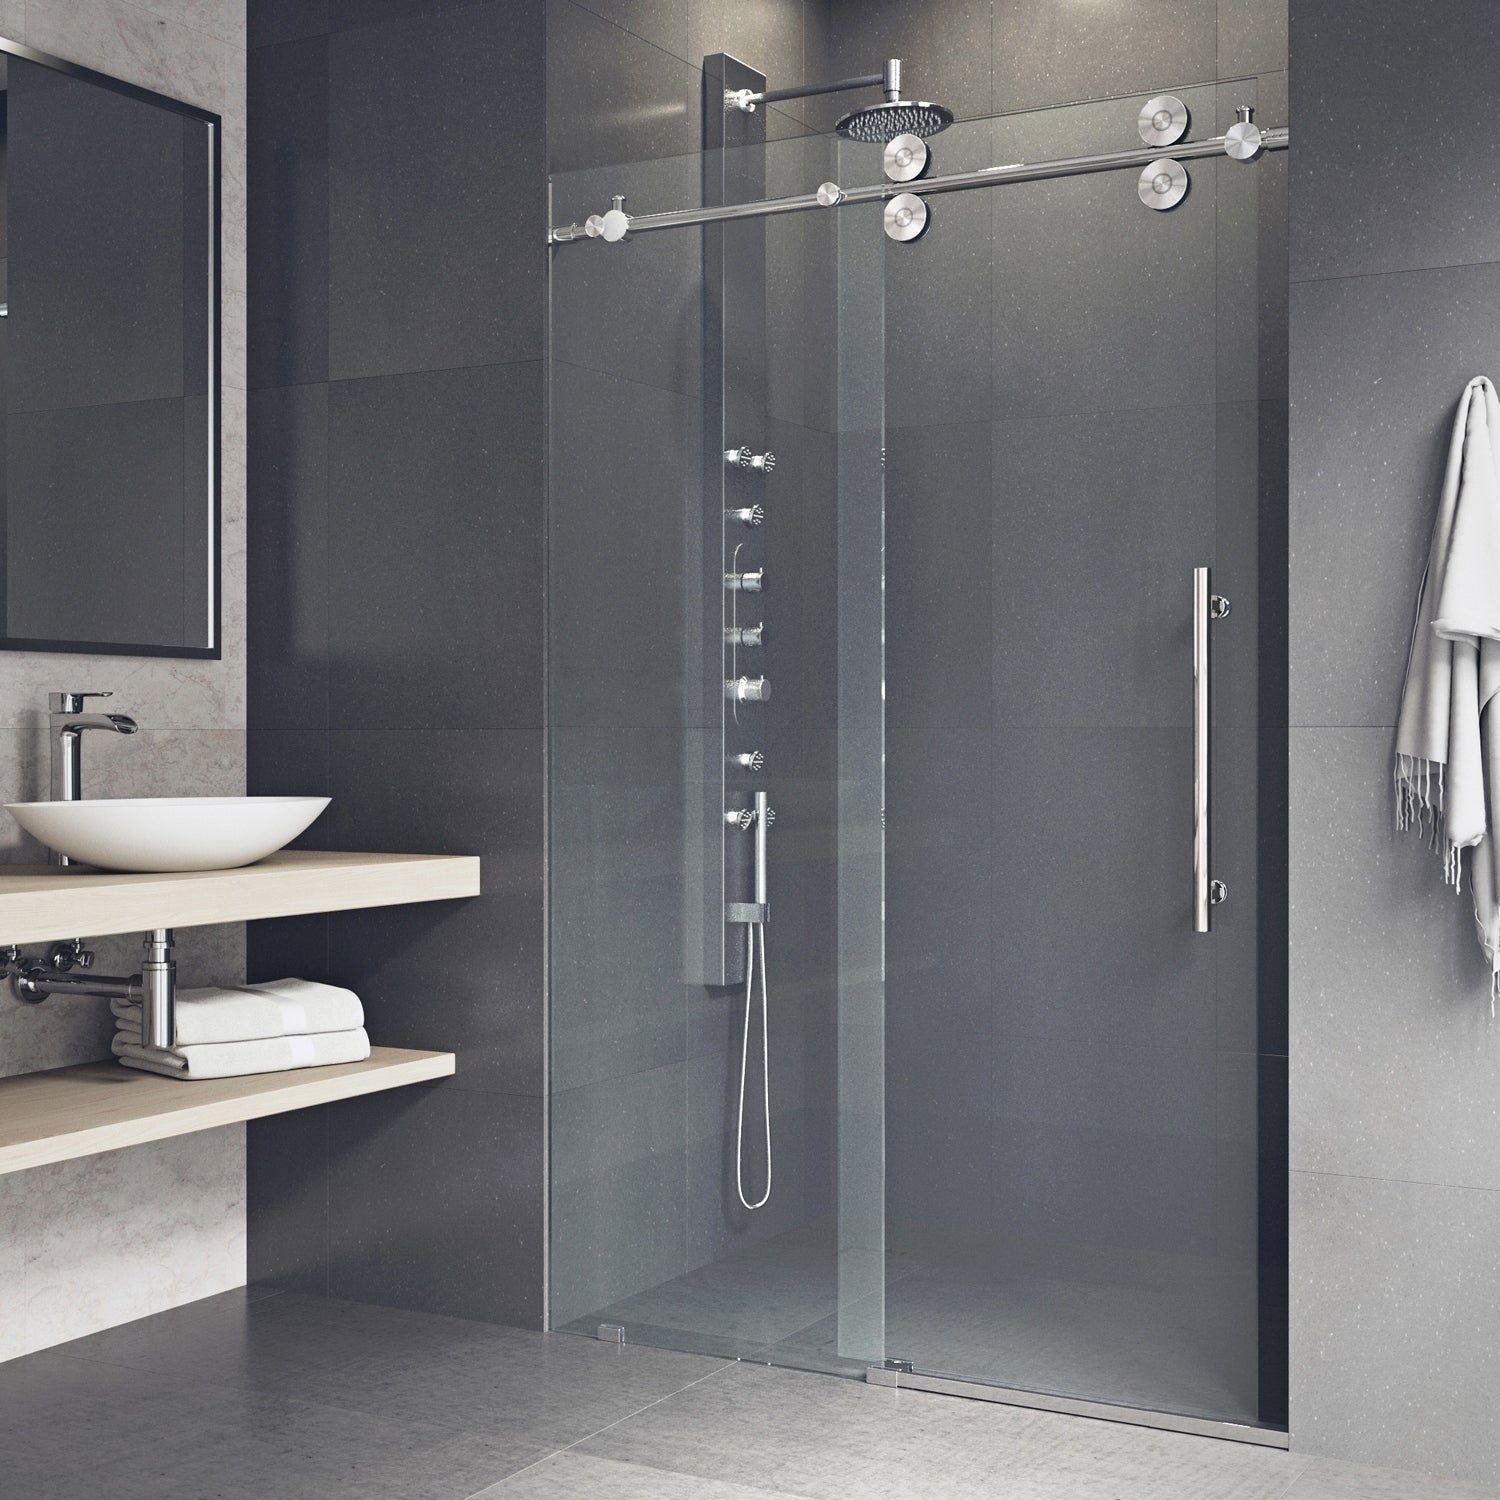 Vigo Elan Adjule Frameless Sliding Shower Door Free Shipping Today 9617976